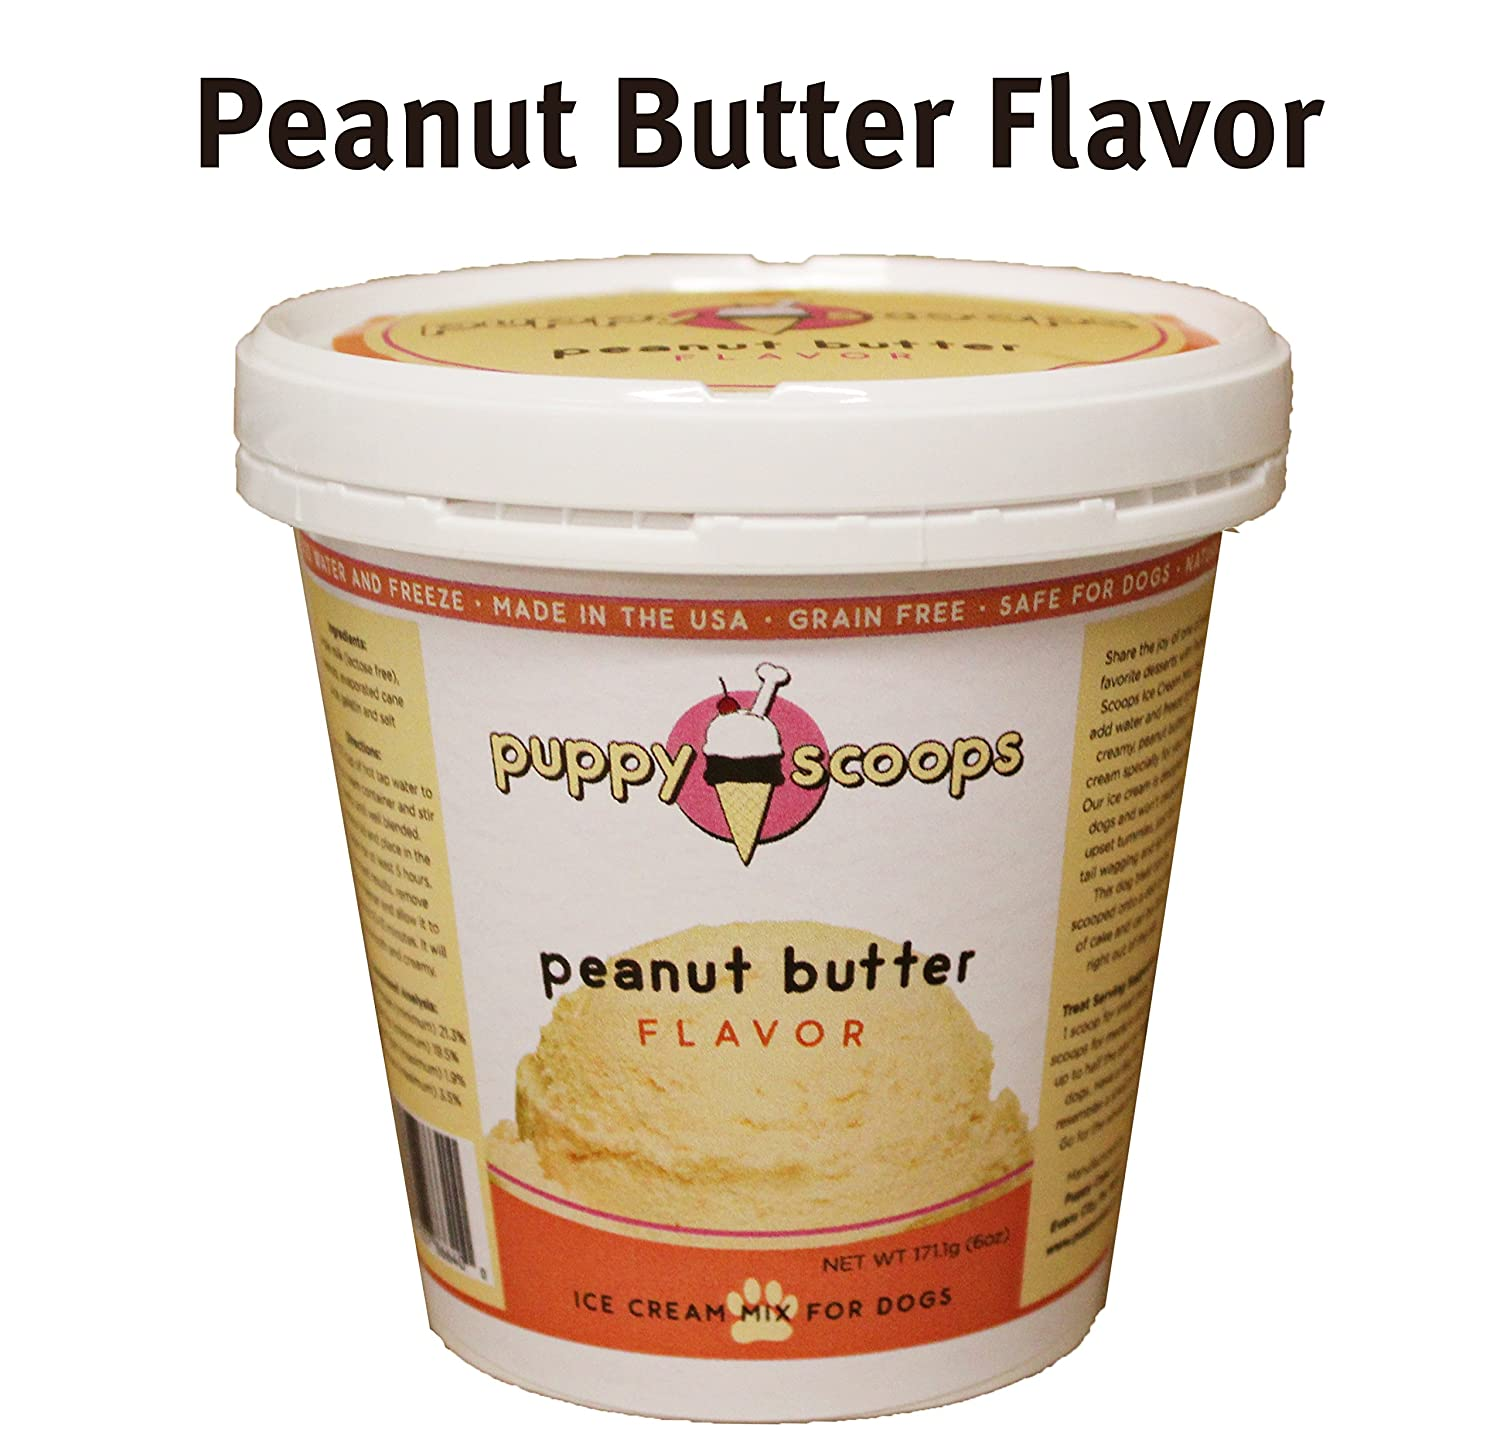 Peanut Butter Ice Cream Mix for Dogs